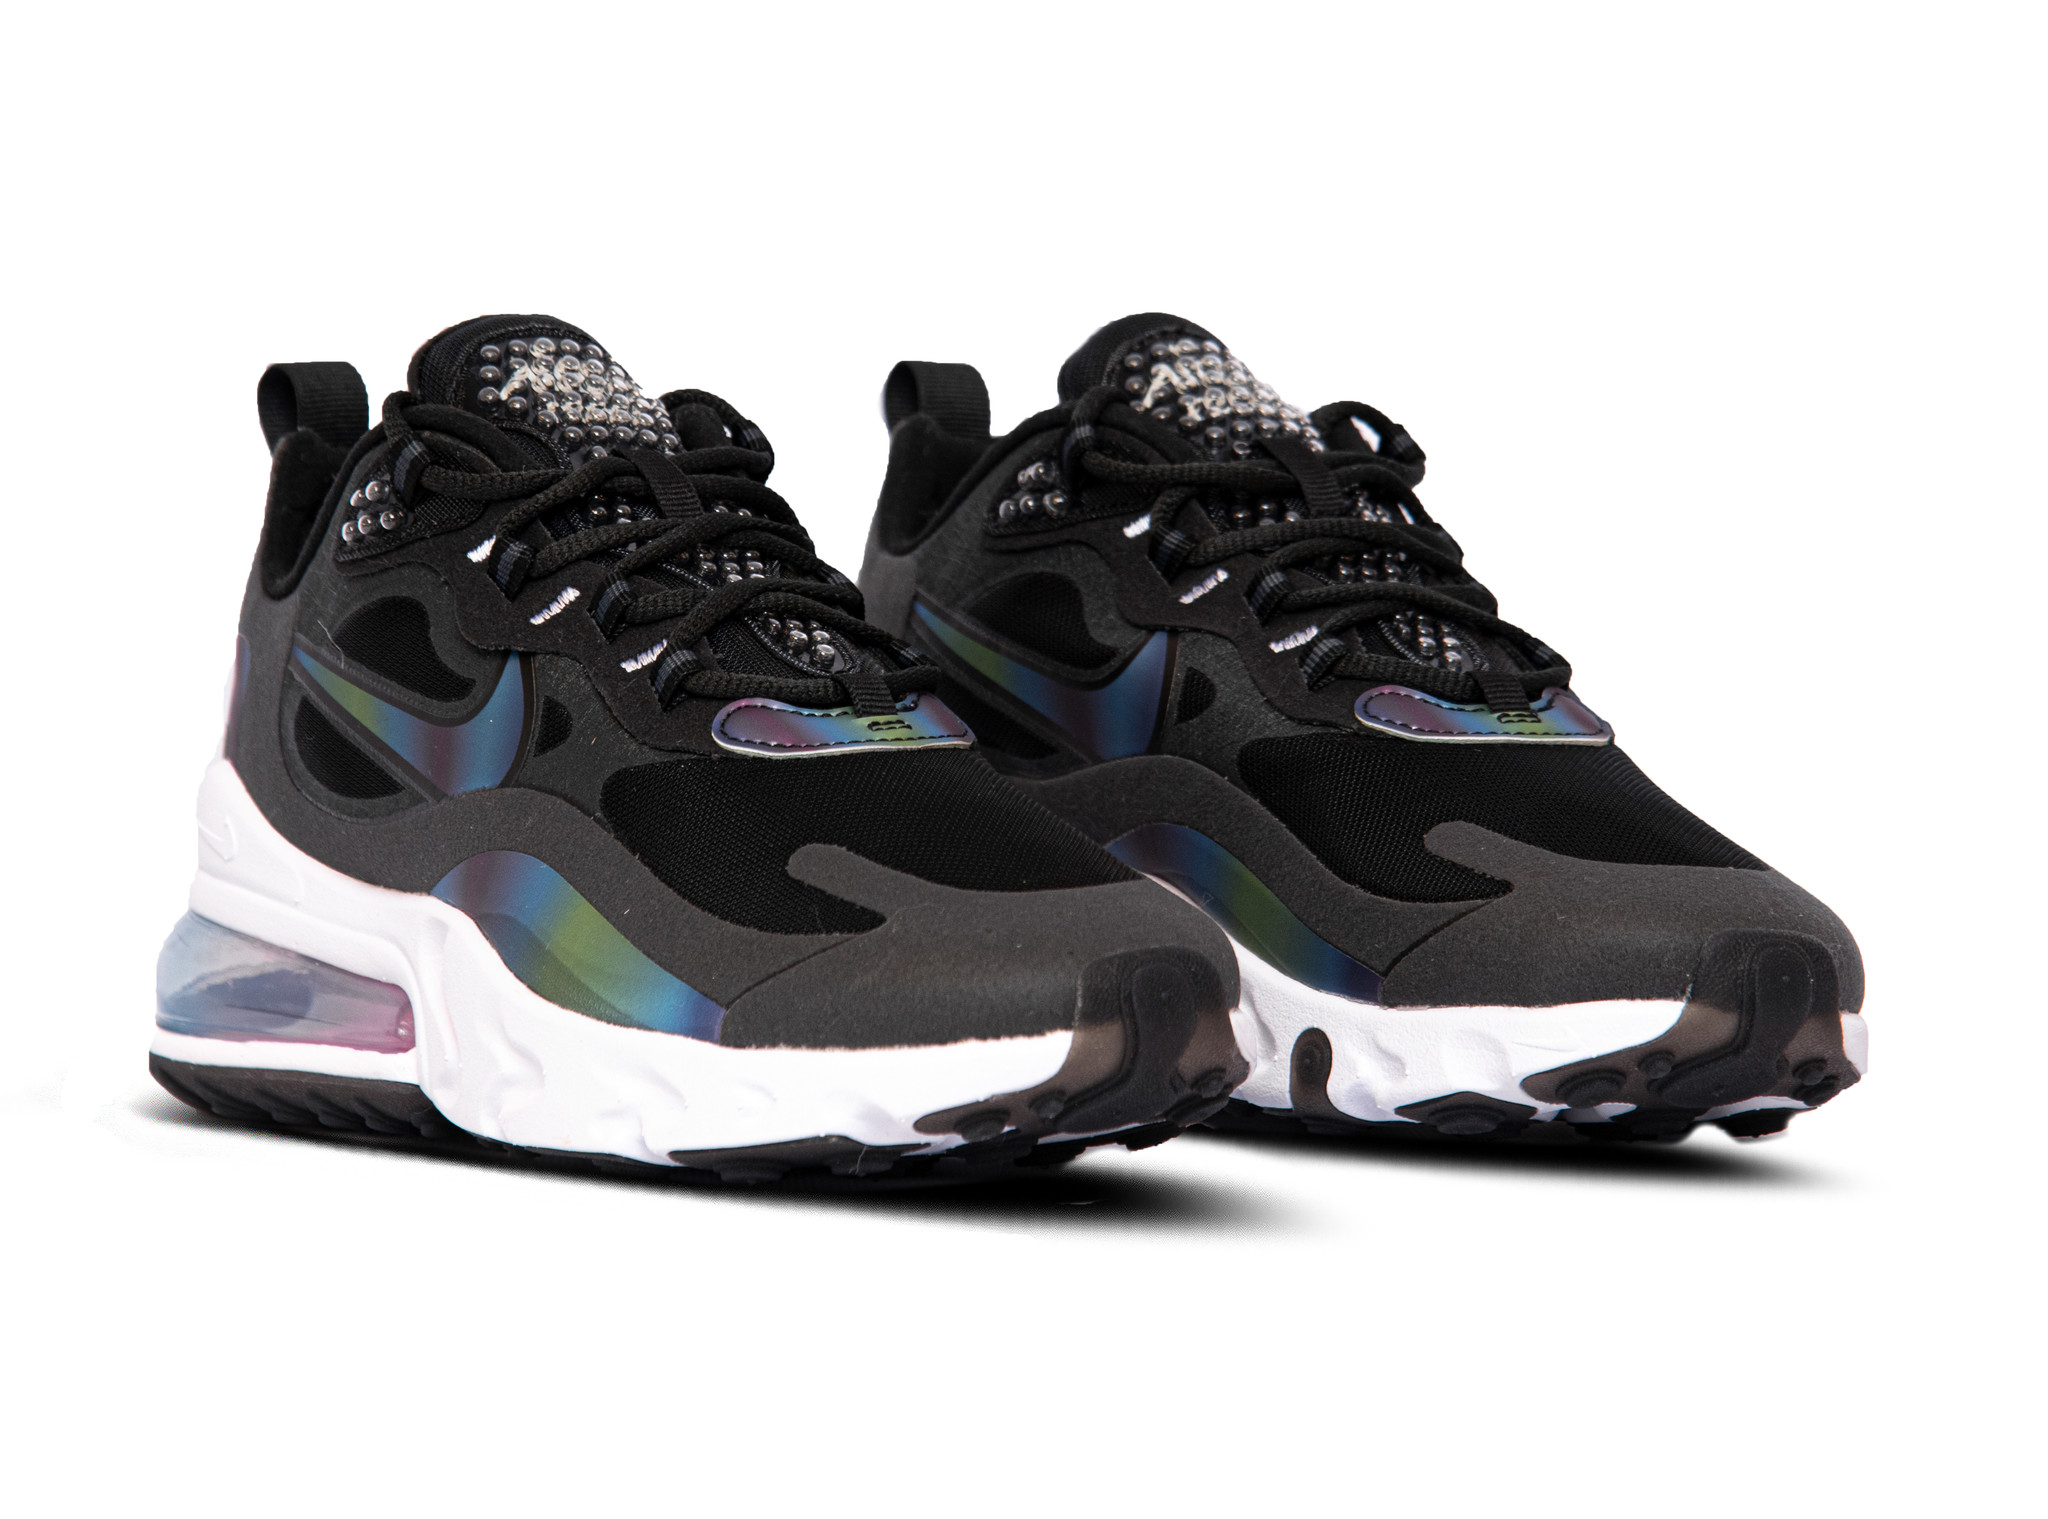 Nike Air Max 270 React 20 DK Smoke Grey Multi Color Black White CT5064 001